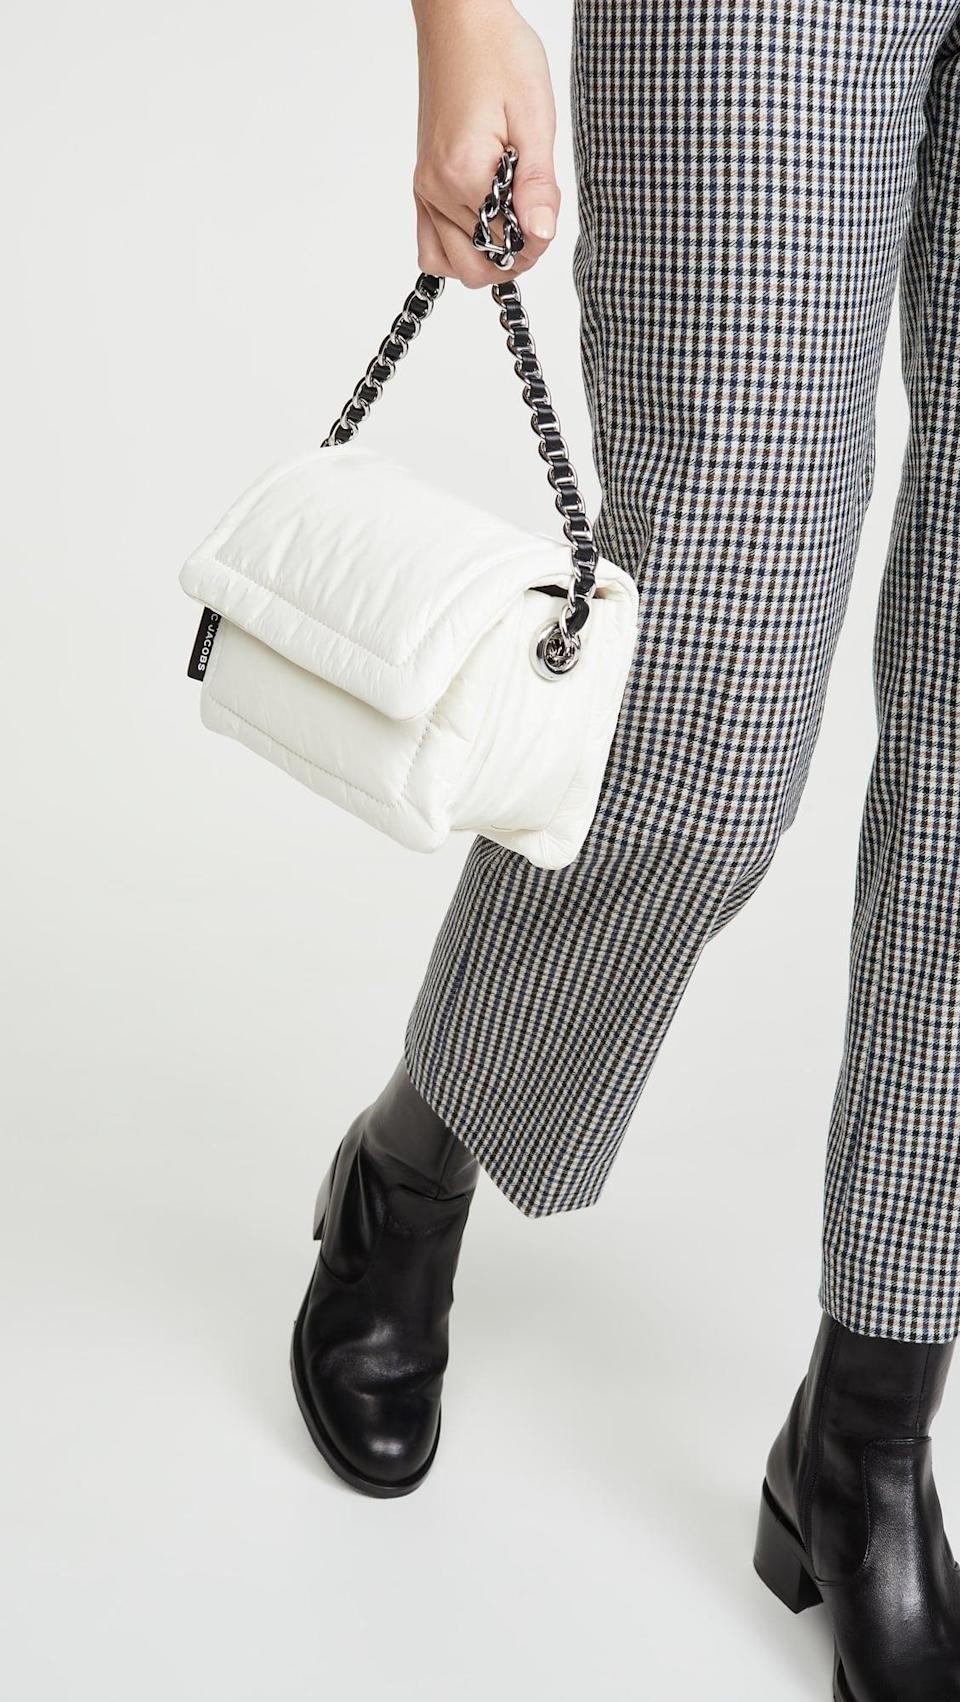 "<p>This cute <a href=""https://www.popsugar.com/buy/Marc-Jacobs-Mini-Pillow-Bag-532938?p_name=The%20Marc%20Jacobs%20Mini%20Pillow%20Bag&retailer=shopbop.com&pid=532938&price=450&evar1=fab%3Aus&evar9=36291197&evar98=https%3A%2F%2Fwww.popsugar.com%2Ffashion%2Fphoto-gallery%2F36291197%2Fimage%2F47027884%2FMarc-Jacobs-Mini-Pillow-Bag&list1=shopping%2Choliday%2Cwinter%2Cgift%20guide%2Cwinter%20fashion%2Choliday%20fashion%2Cfashion%20gifts&prop13=api&pdata=1"" rel=""nofollow noopener"" class=""link rapid-noclick-resp"" target=""_blank"" data-ylk=""slk:The Marc Jacobs Mini Pillow Bag"">The Marc Jacobs Mini Pillow Bag</a> ($450) is at the top of our wish list.</p>"